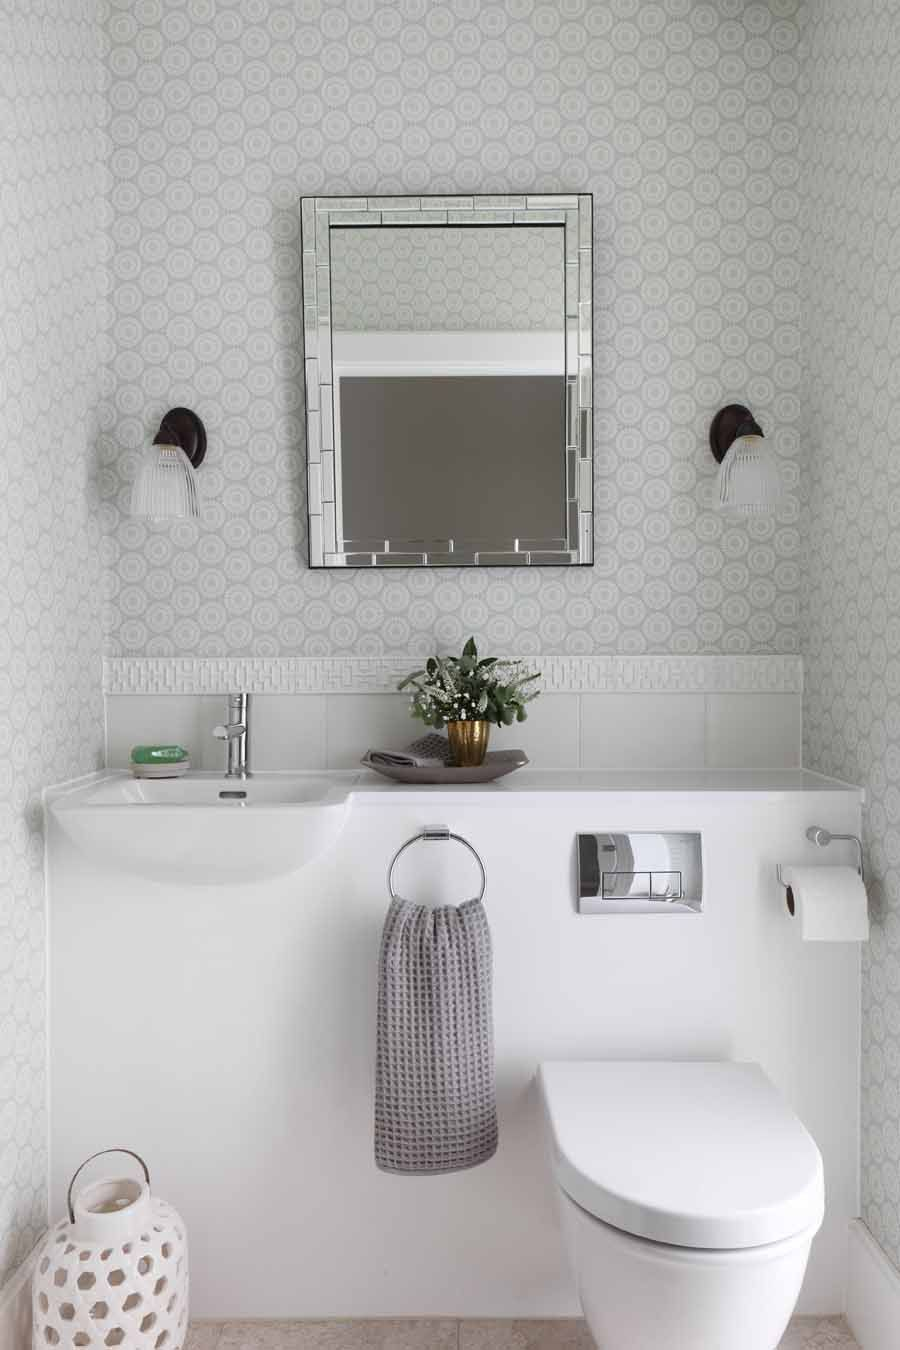 Cloakroom | bathroom ideas | Pinterest | Small spaces, Downstairs ...